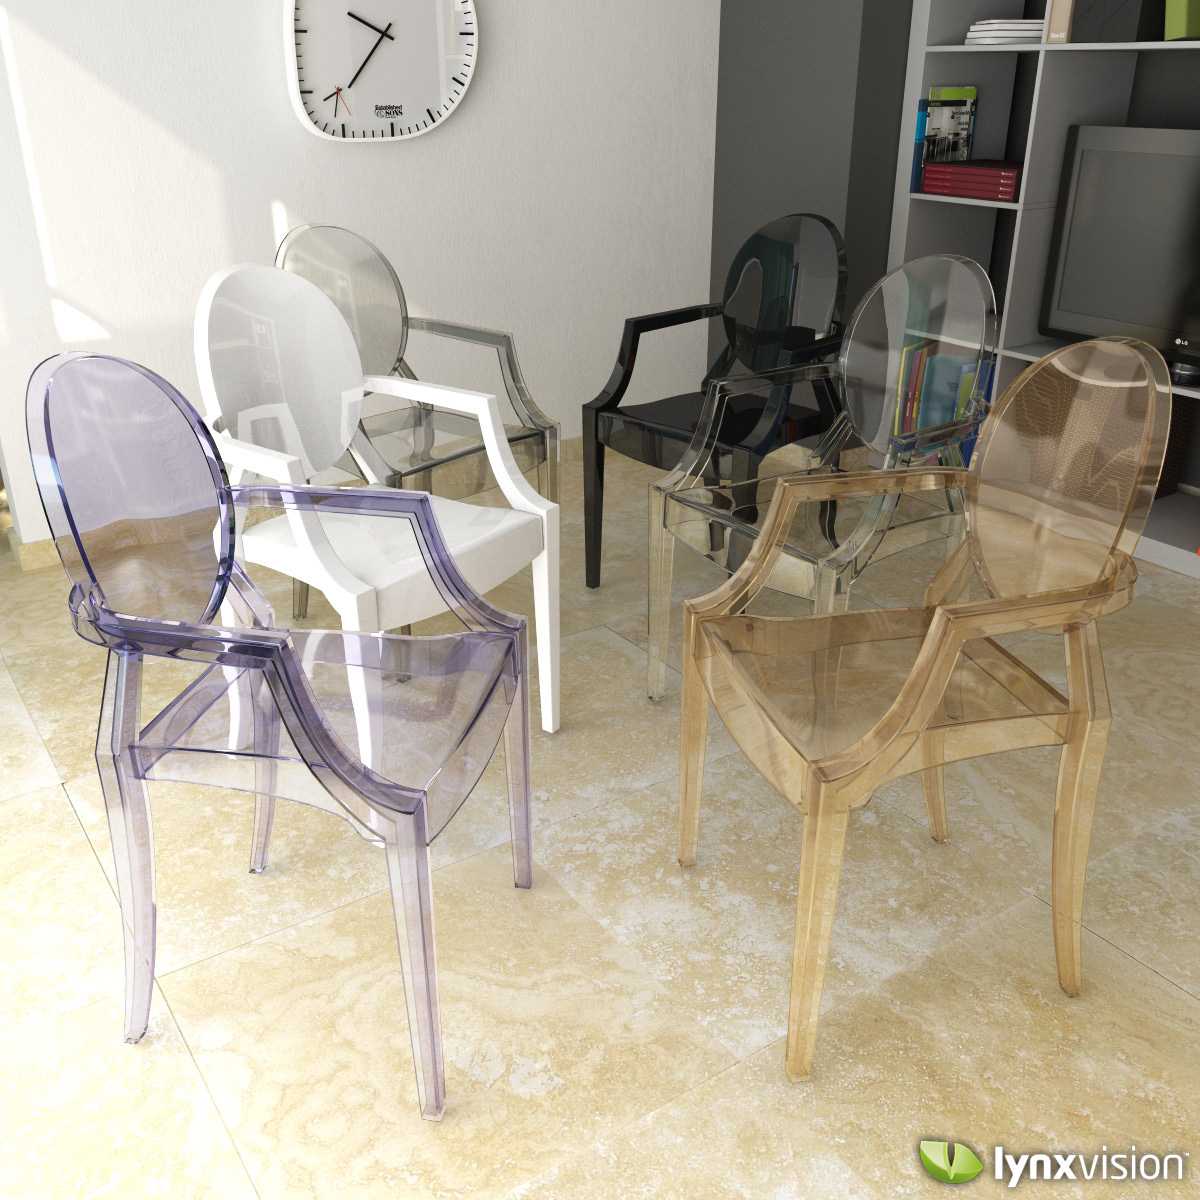 louis ghost armchair by philippe starck 3d model max obj 3ds fbx louis ghost armchair by philippe starck 3d model max obj 3ds fbx stl mtl 1